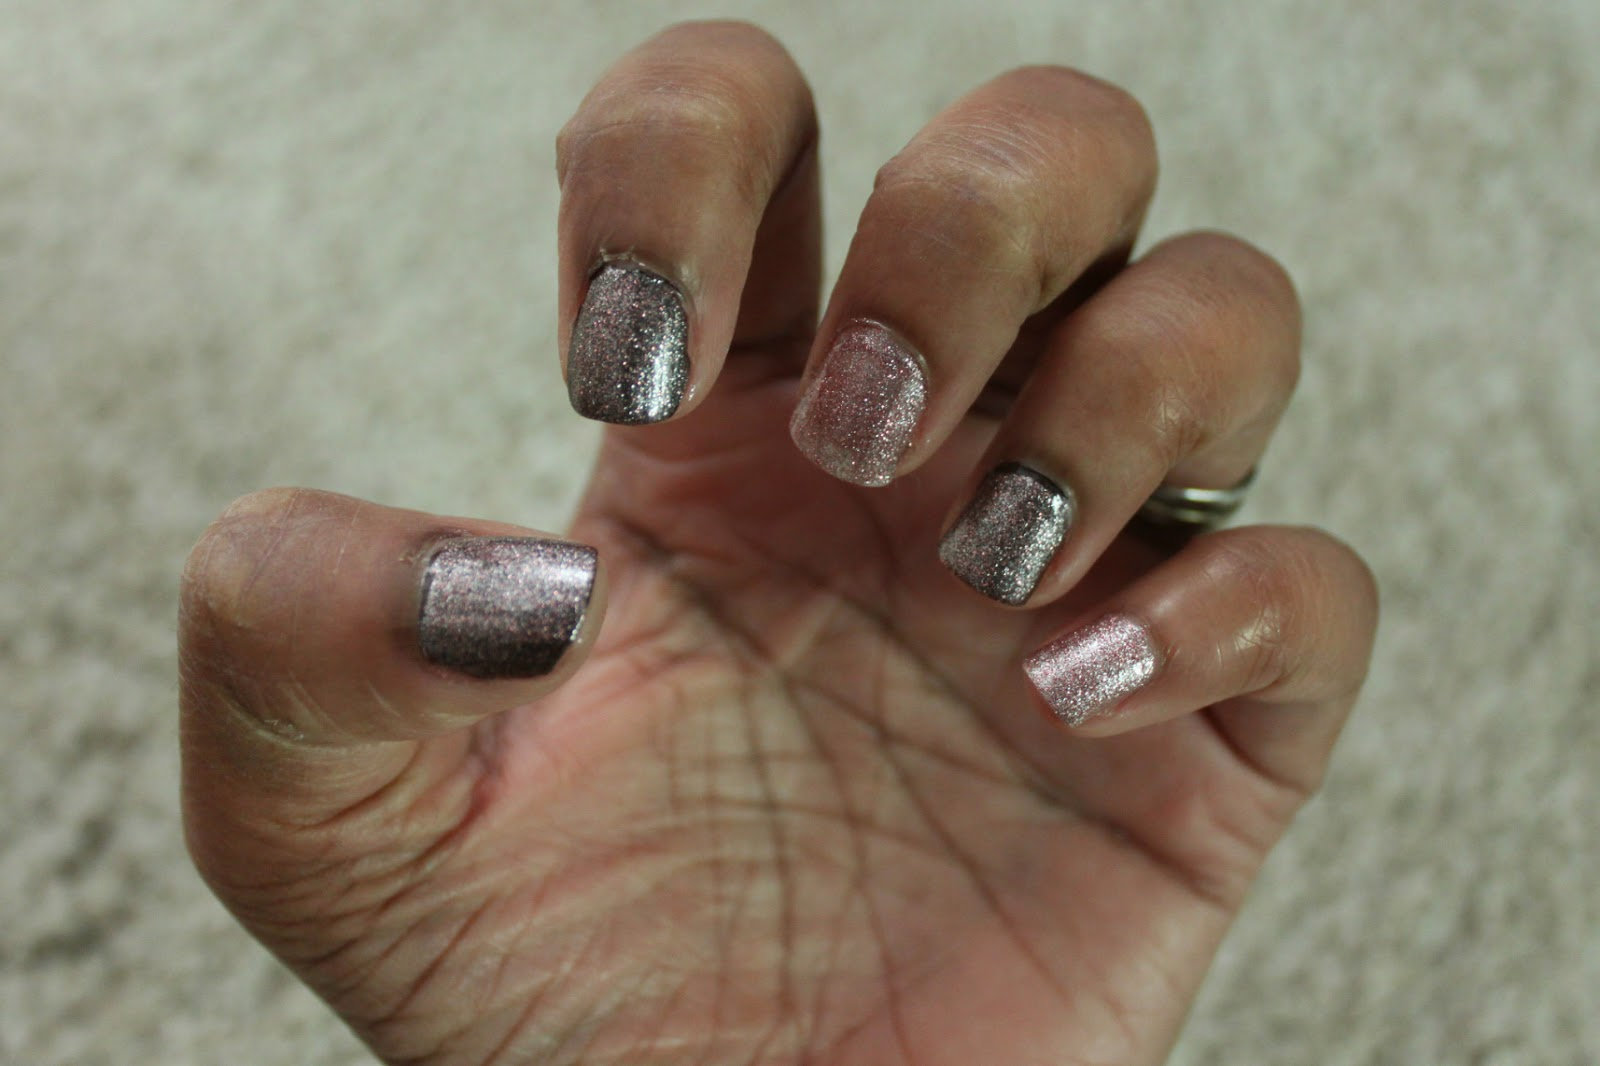 PINK SILVER GLITTER BY BARRY M